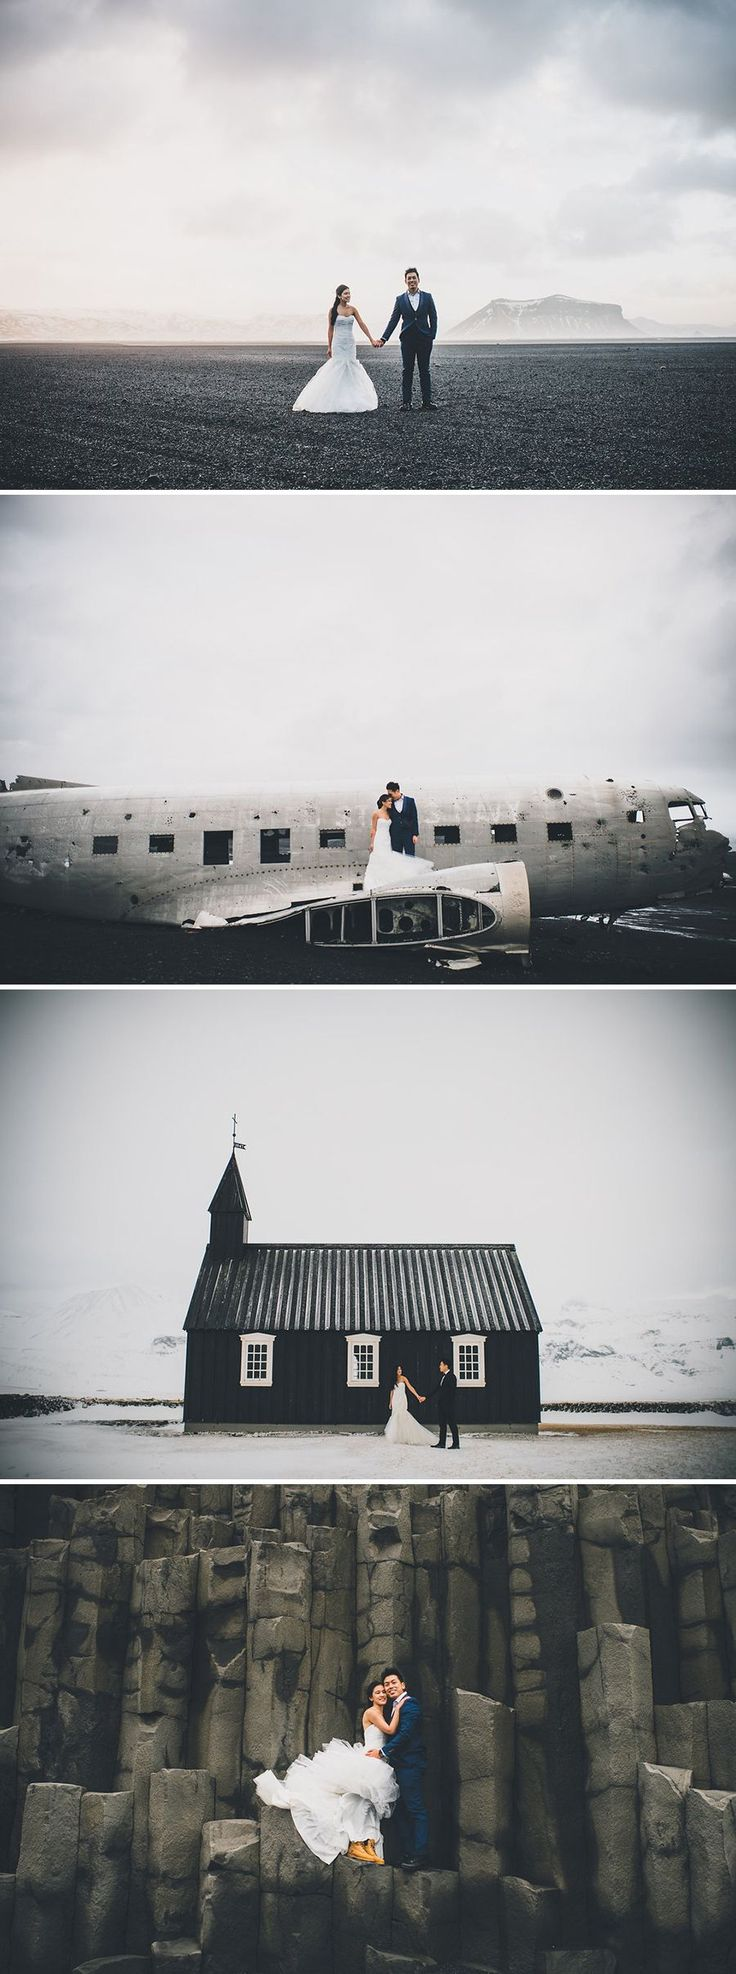 Best pre-wedding and engagement shoot locations in Iceland // Fearless: William and Velda Battle the Elements in Iceland